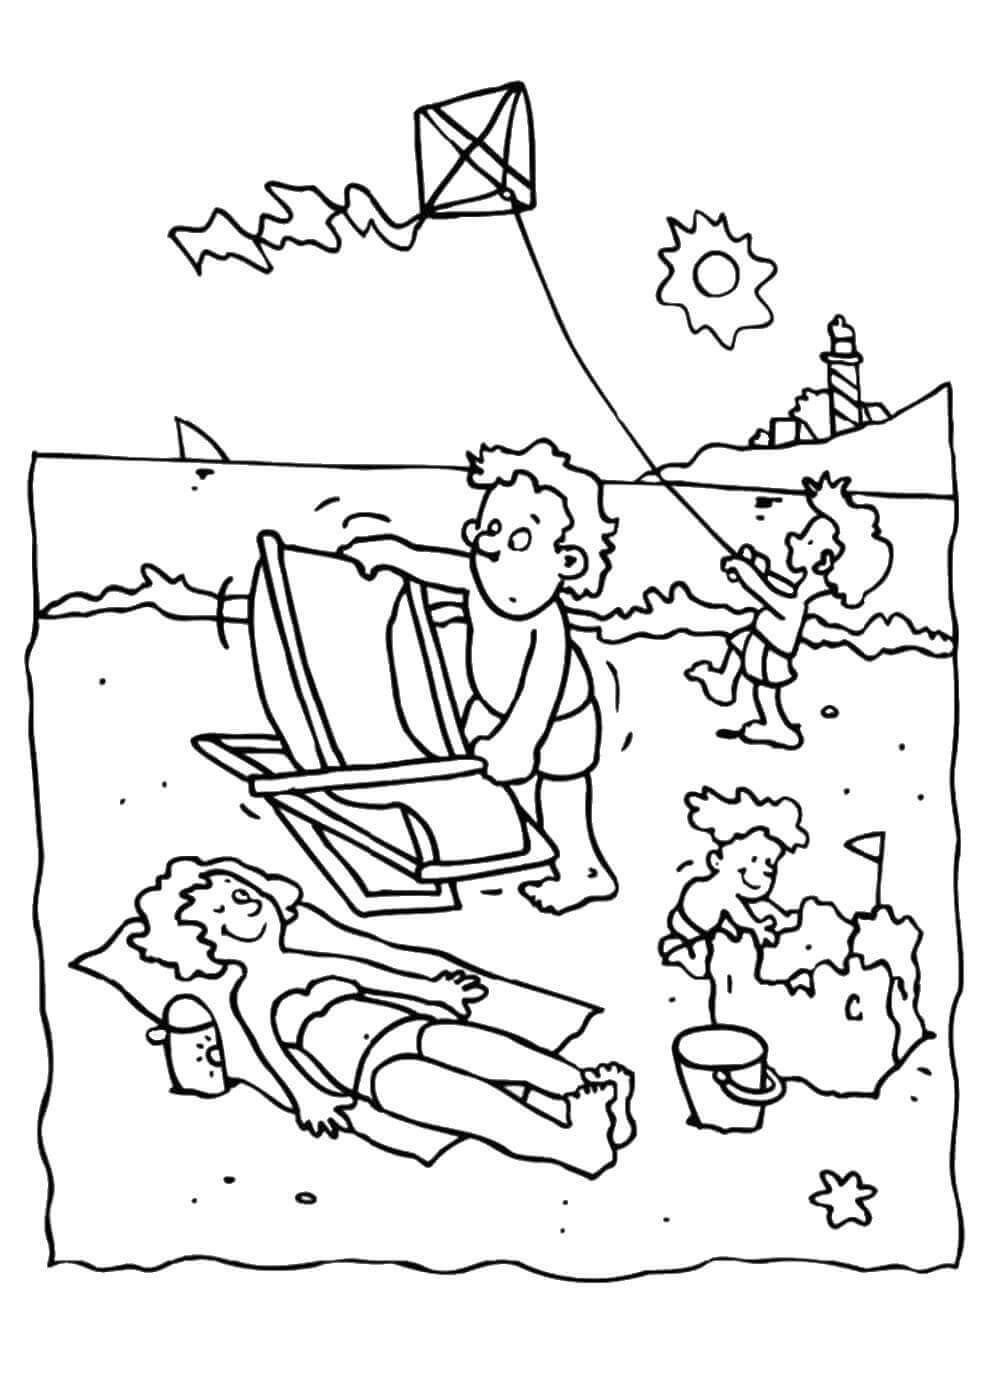 coloring beach pictures 25 free printable beach coloring pages scribblefun pictures beach coloring